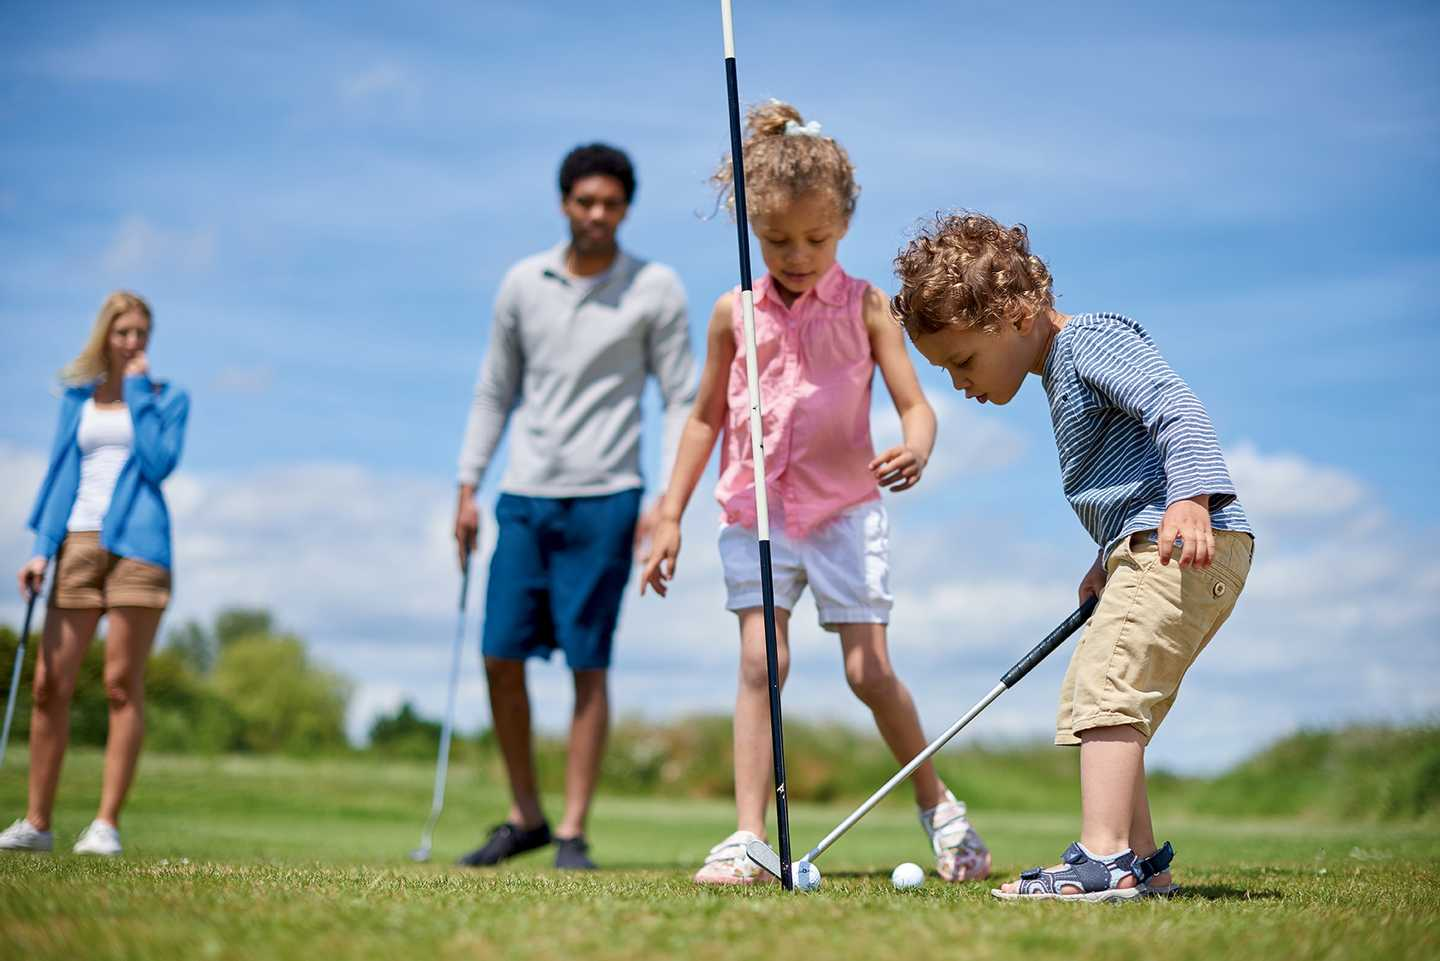 A family playing golf